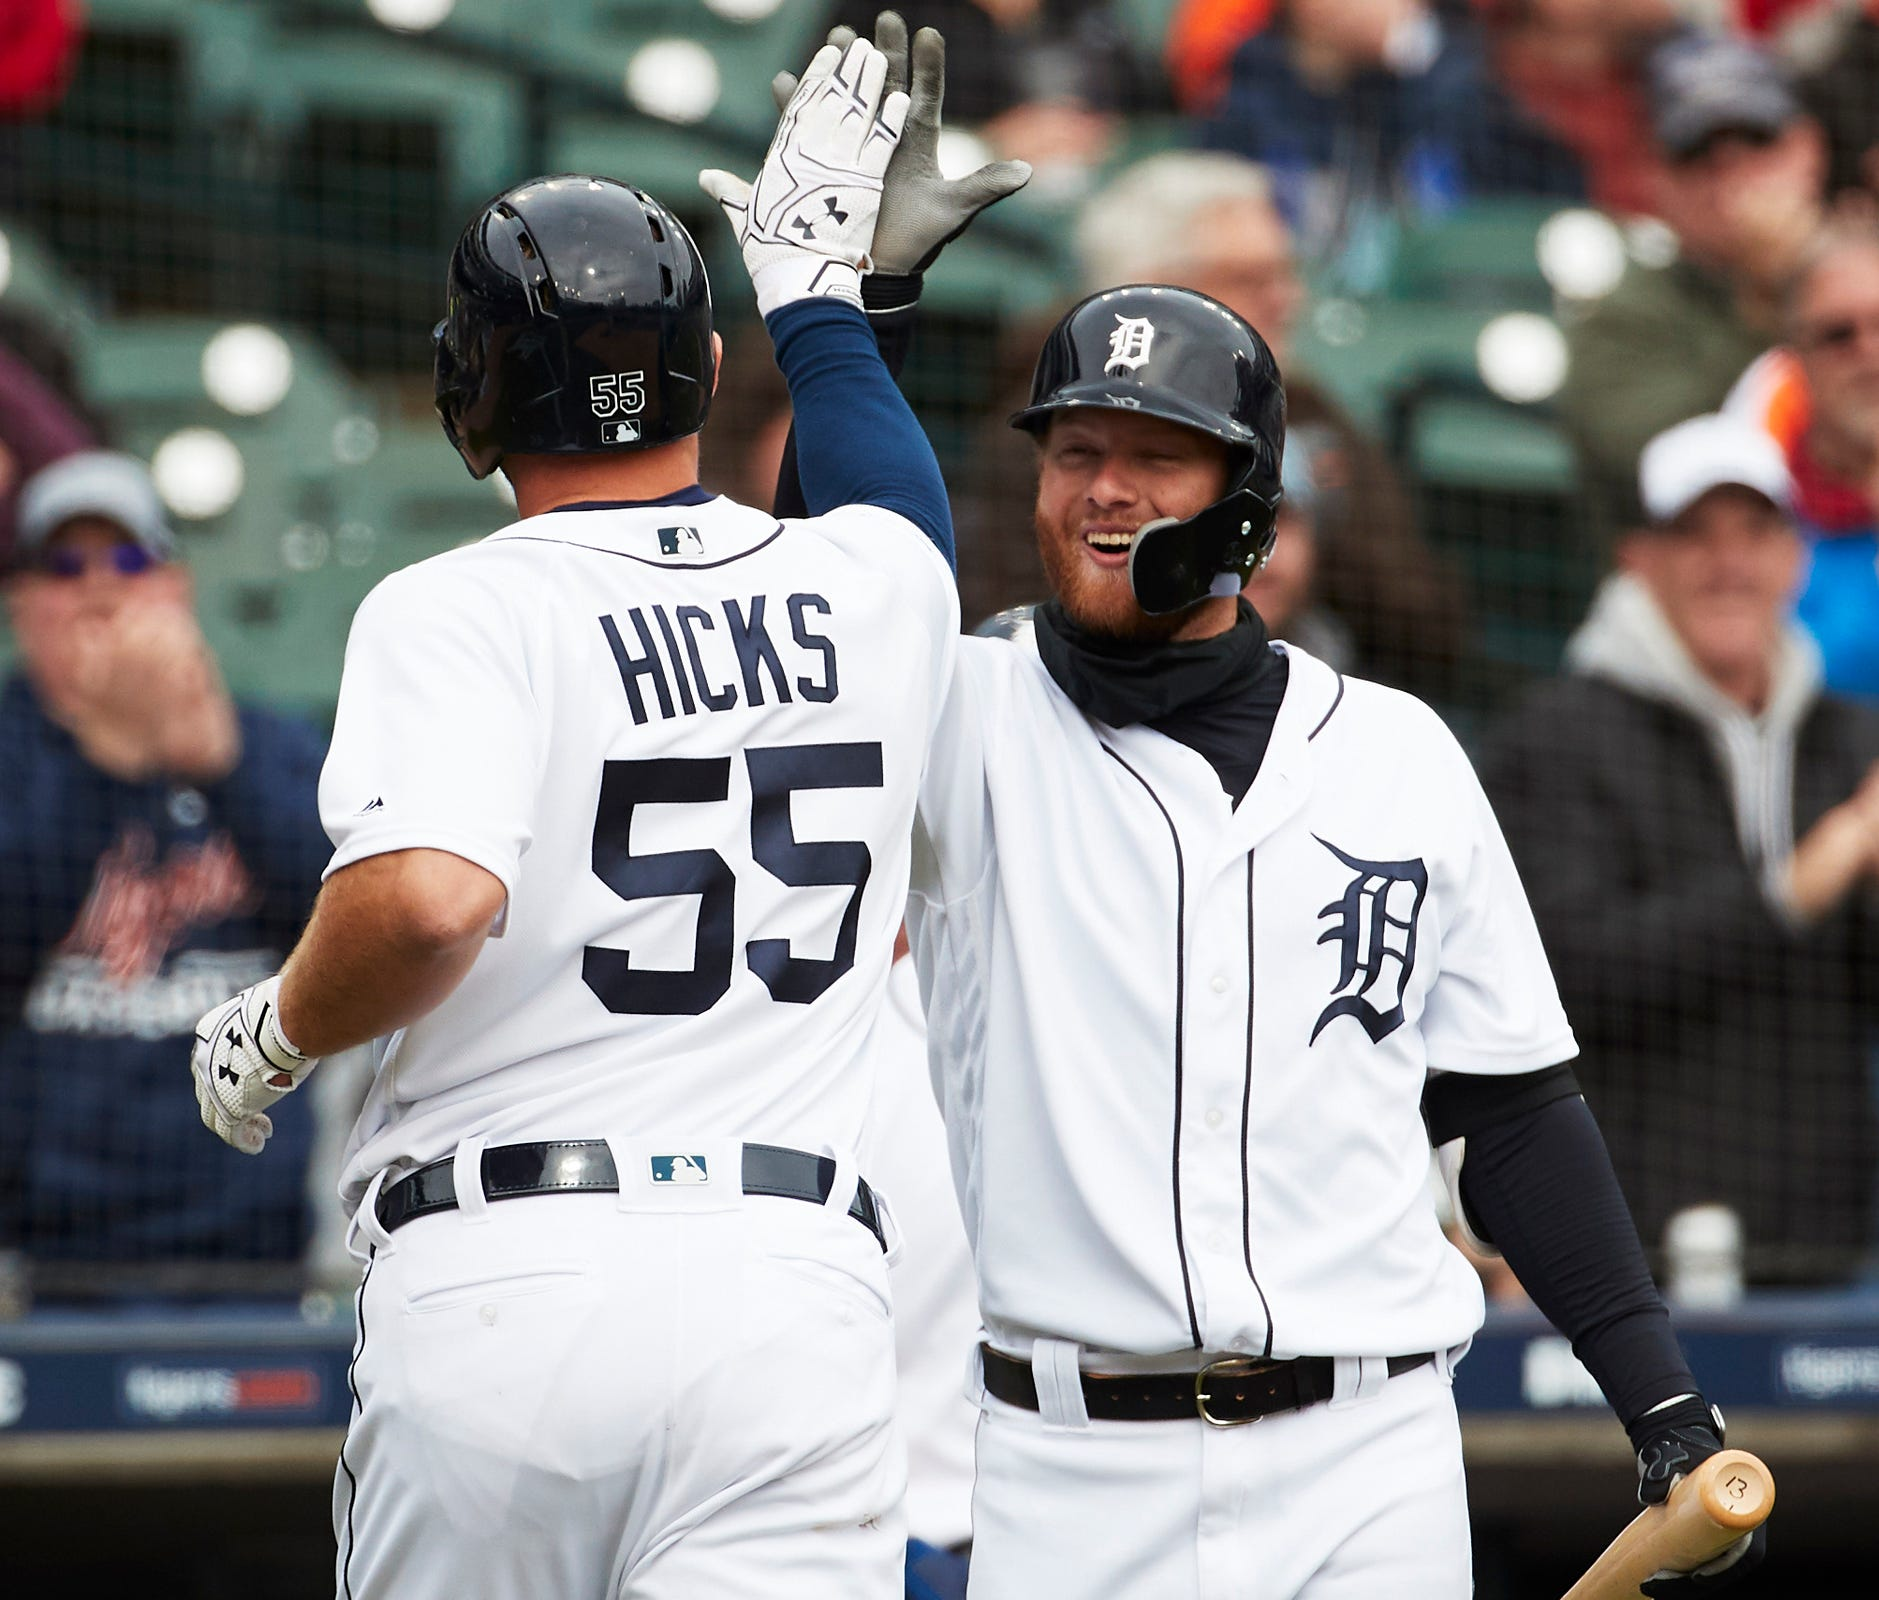 Tigers catcher John Hicks receives congratulations from center fielder Dustin Peterson after he hits a home run in the sixth inning on Wednesday, April 10, 2019, at Comerica Park.